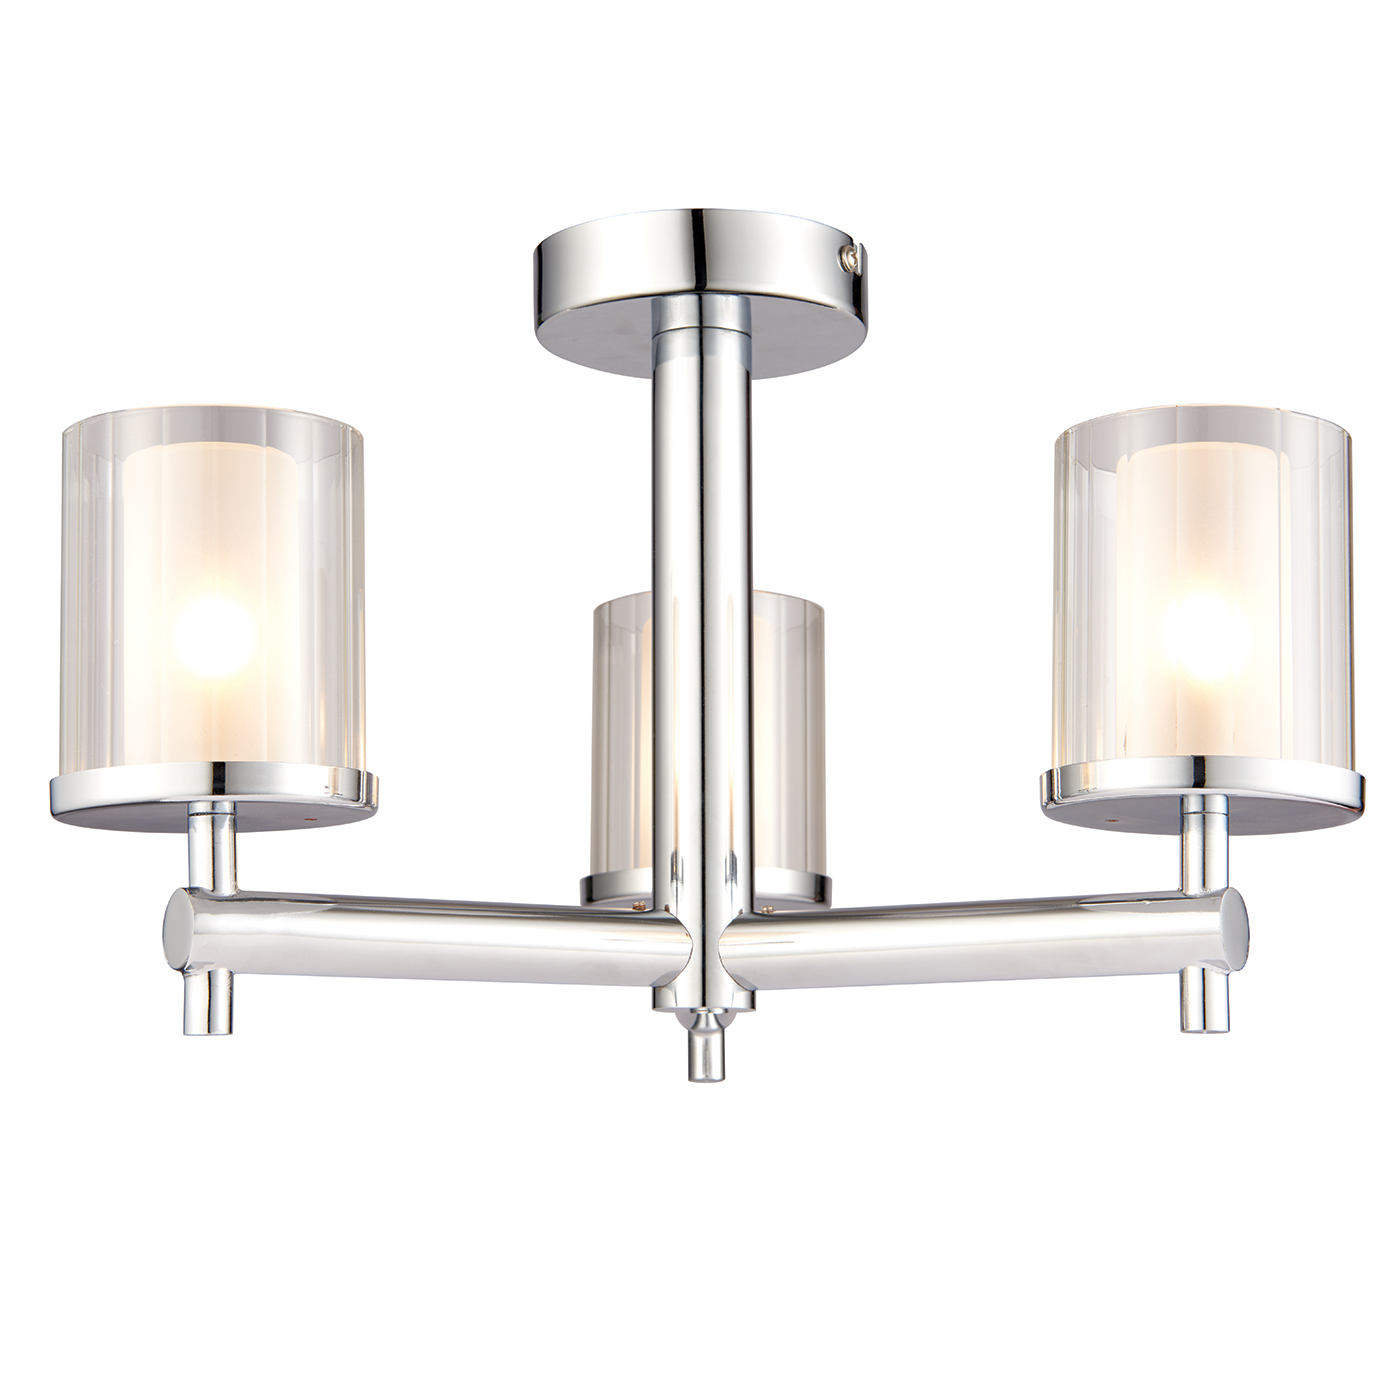 Endon Britton semi flush bathroom ceiling light IP44 3x 18W chrome rippled glass Thumbnail 1